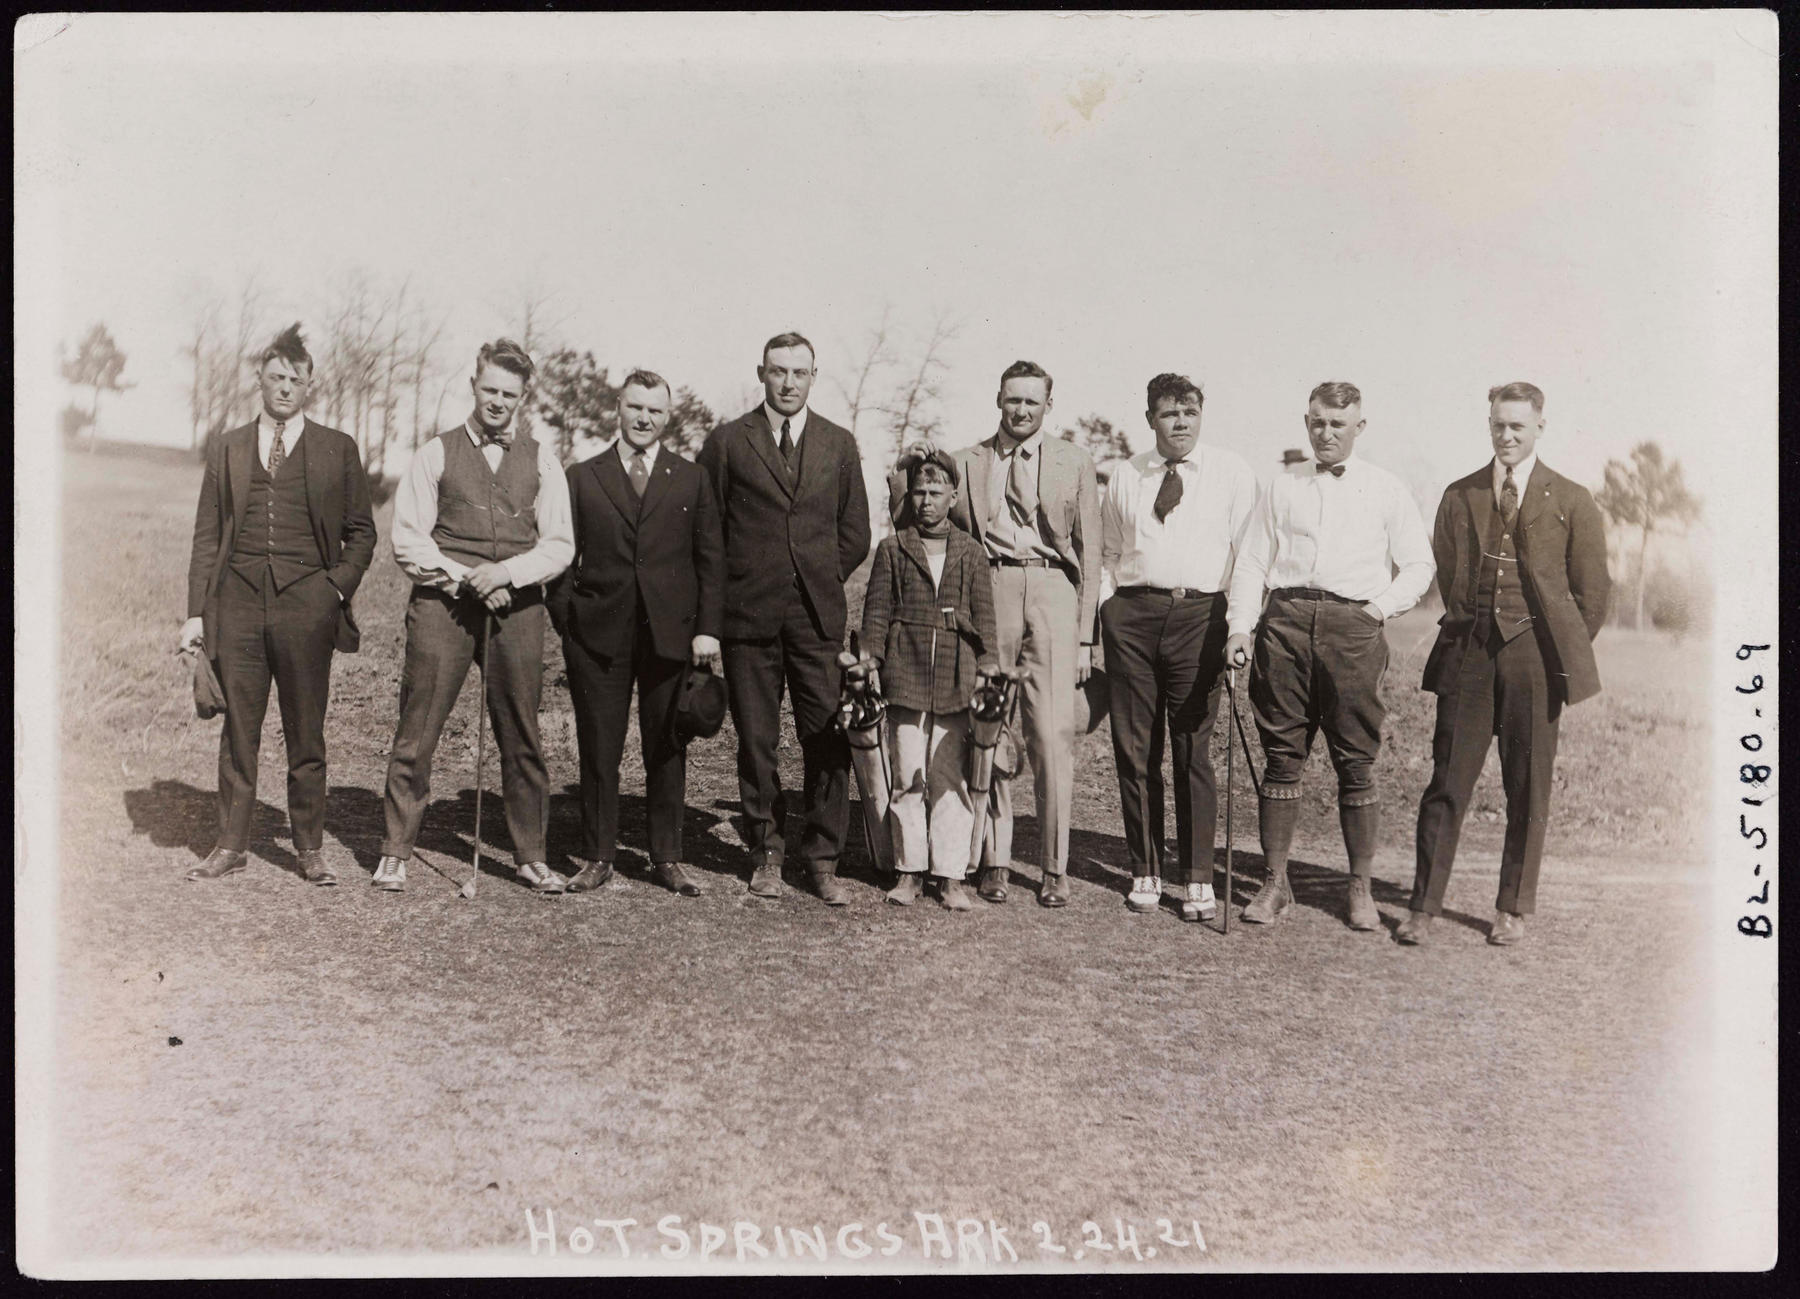 Standing left to right, Clyde Milan, Waite Hoyt, Tommy Griffith, Jeff Pfeffer, unidentified caddy, Walter Johnson, Babe Ruth, Carl Mays, and Harry Harper.  The photograph was taken at Hot Springs, Ark. on February 24, 1921.   BA-PF-Walter-Johnson-Misc-003  (National Baseball Hall of Fame and Museum)